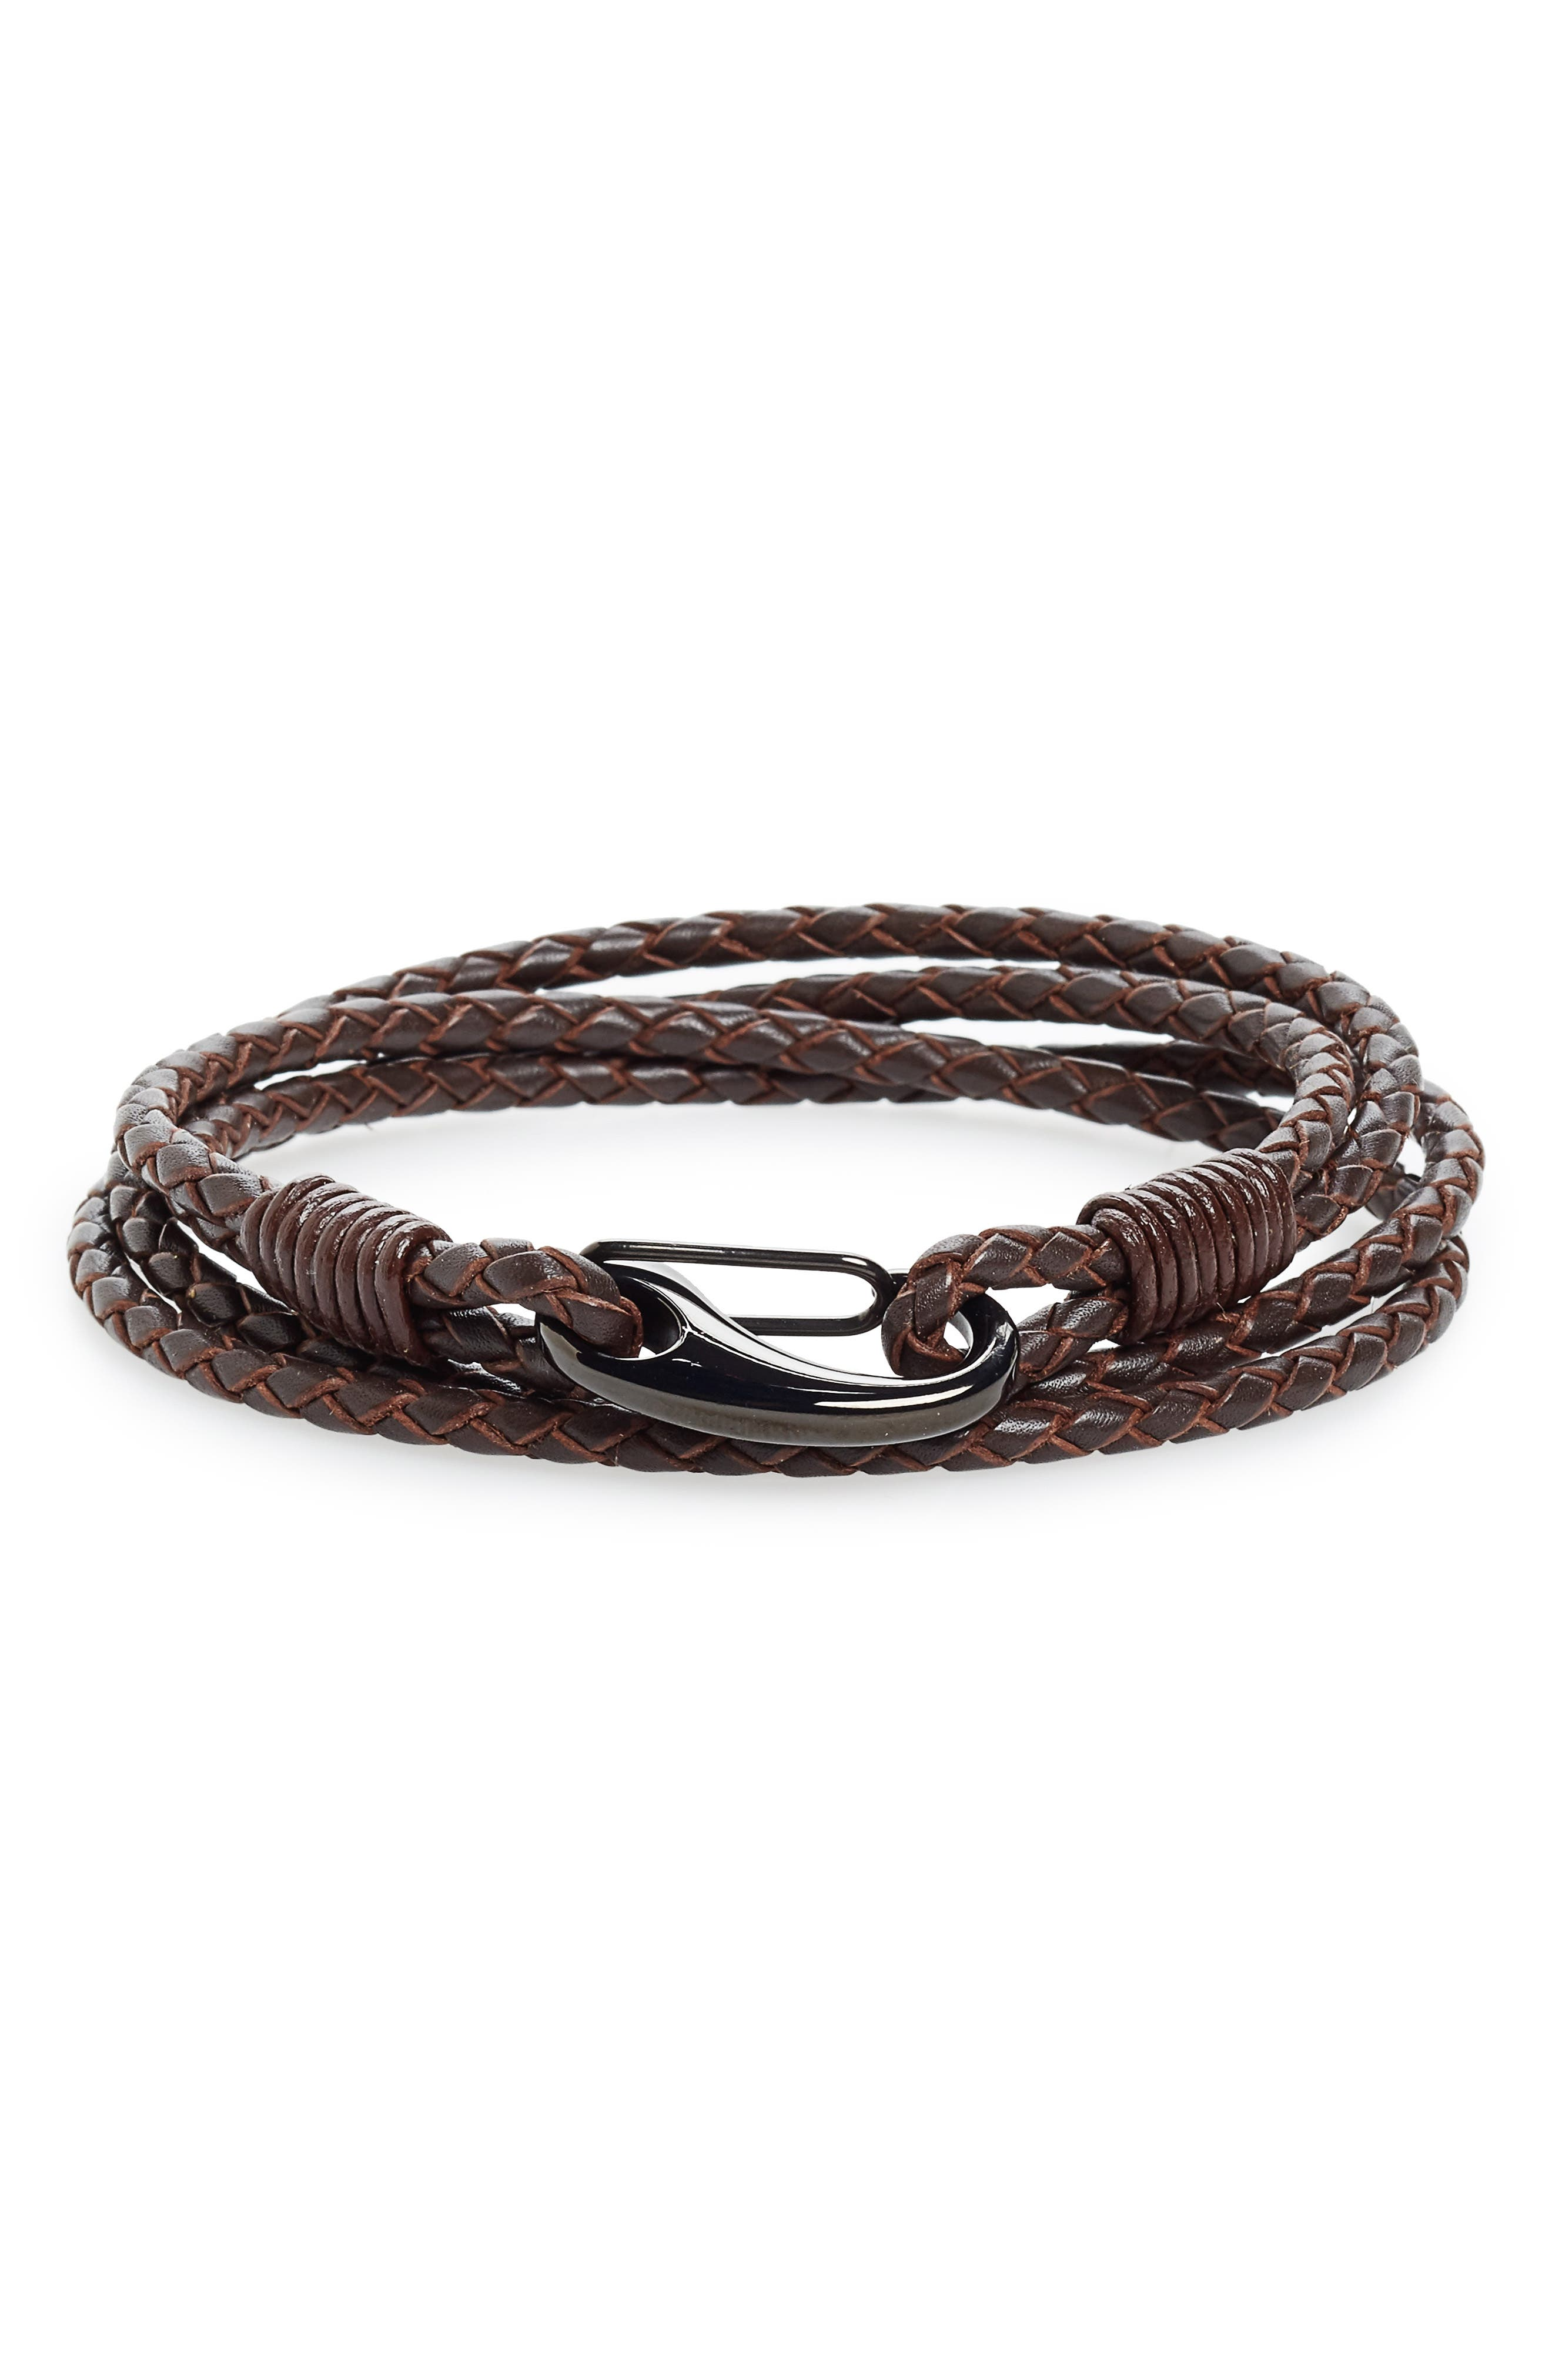 Braided Leather Wrap Bracelet,                         Main,                         color, Brown